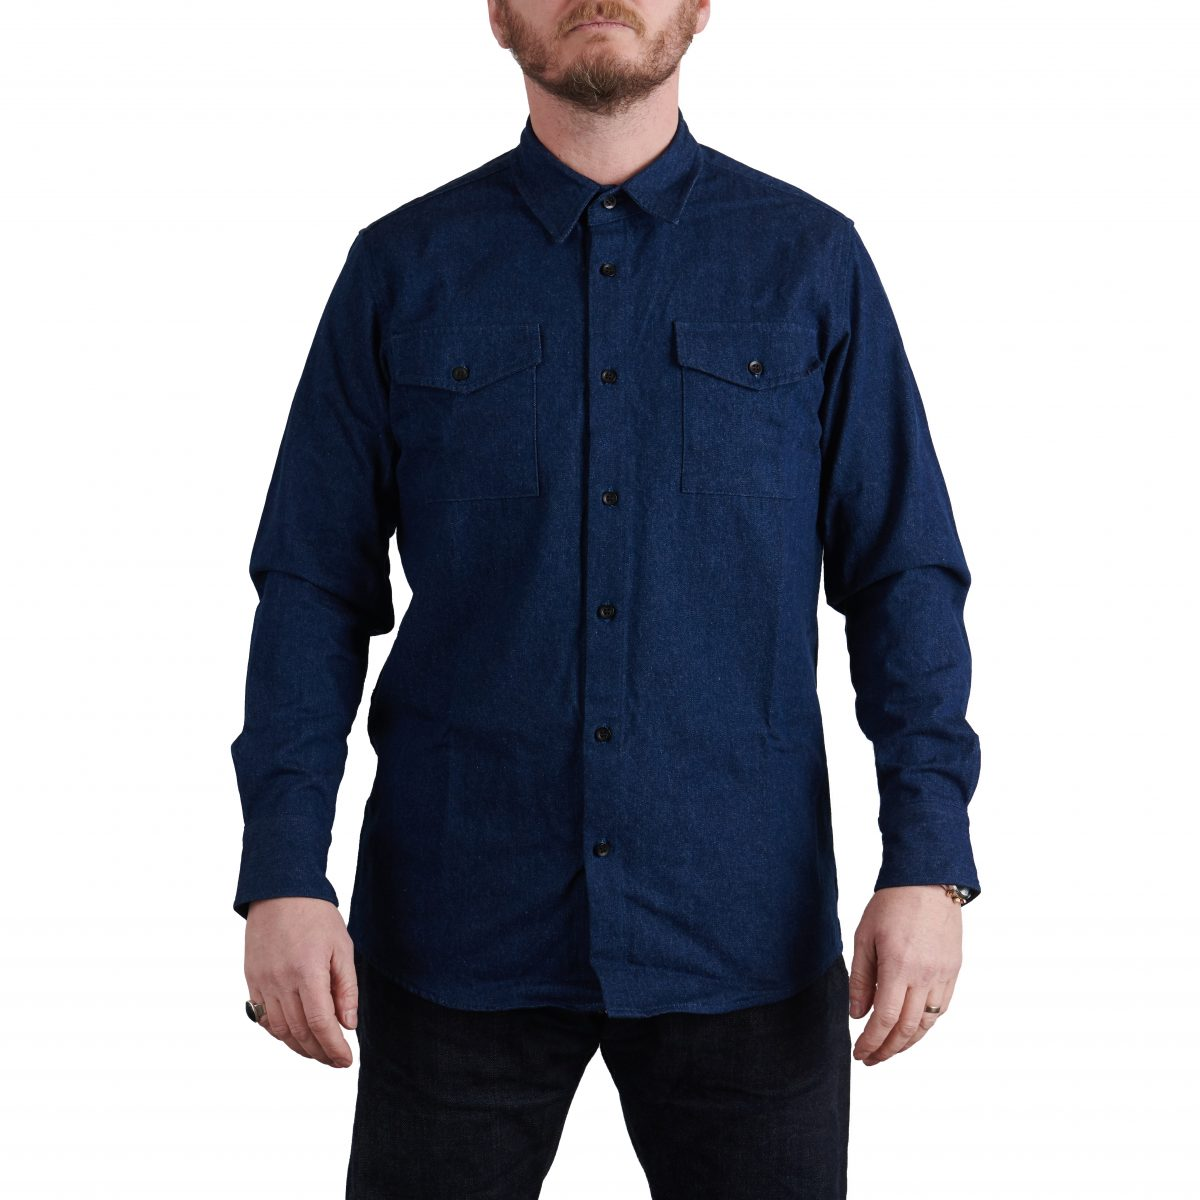 MIlo's Dark Blue Denim Cotton Drill Shirt on Milo